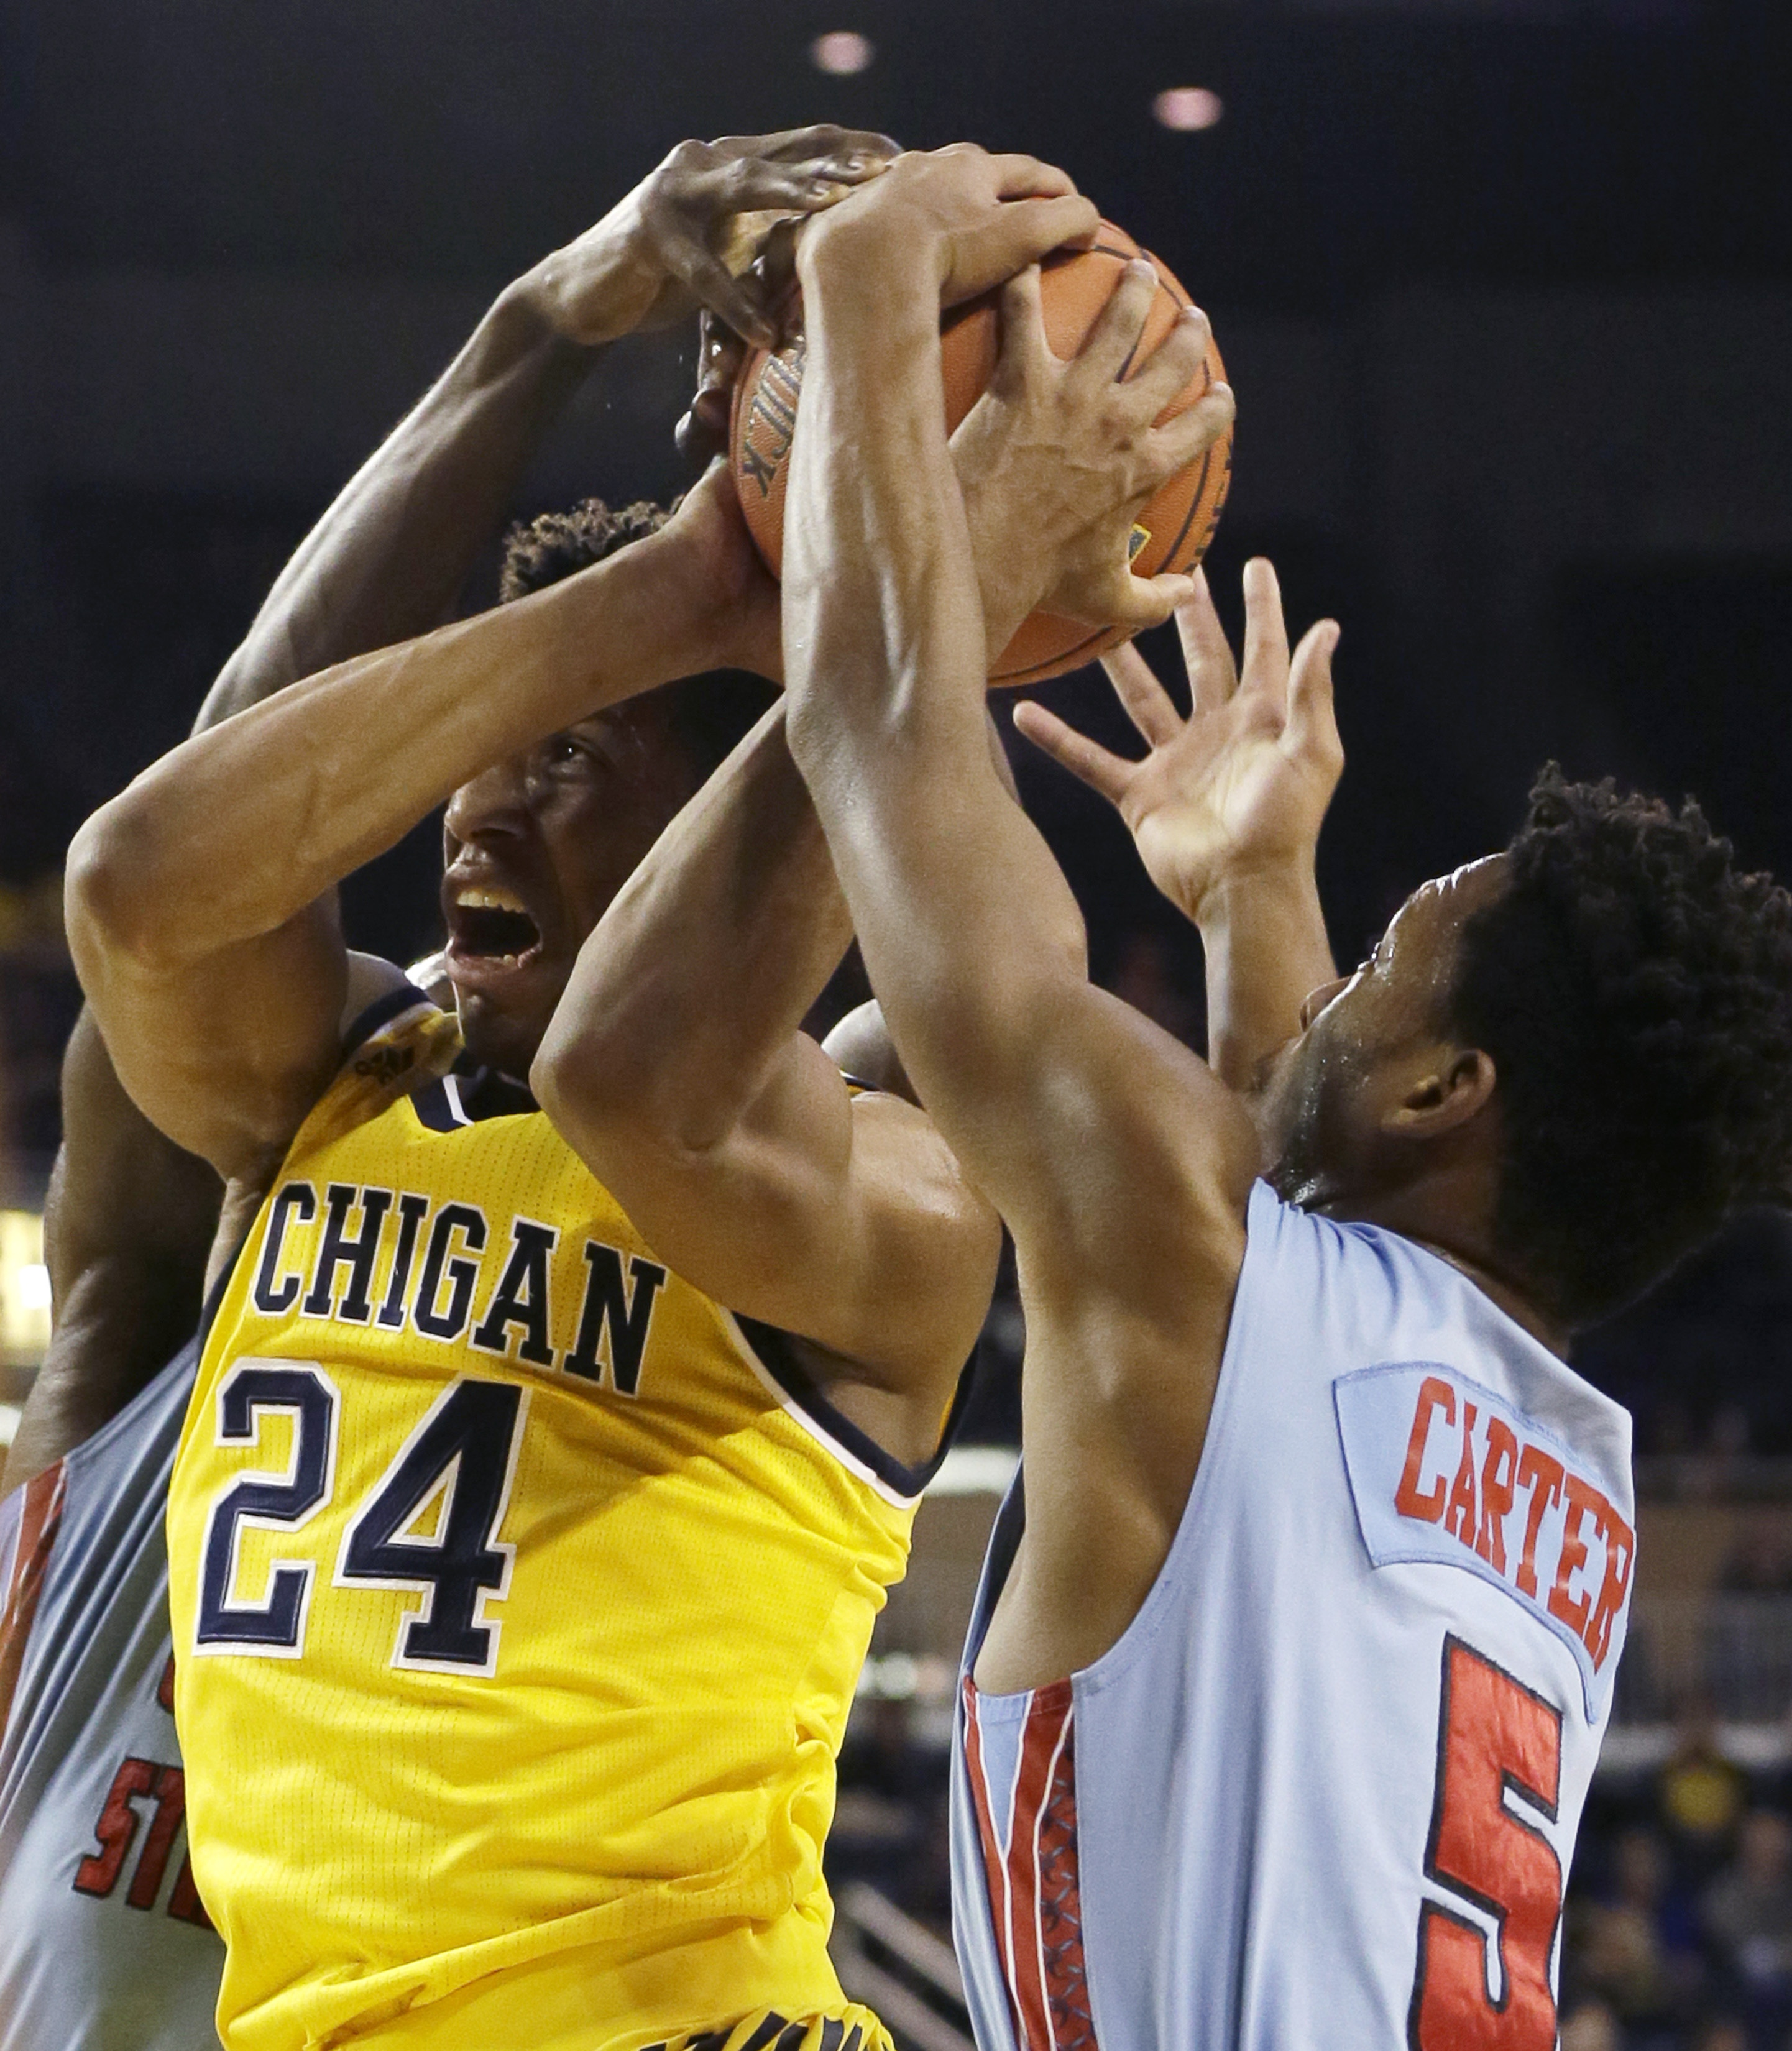 Michigan guard Aubrey Dawkins (24) and Delaware State guard Malik Carter (5) battle for a rebound during the second half of an NCAA college basketball game, Saturday, Dec. 12, 2015, in Ann Arbor, Mich. (AP Photo/Carlos Osorio)